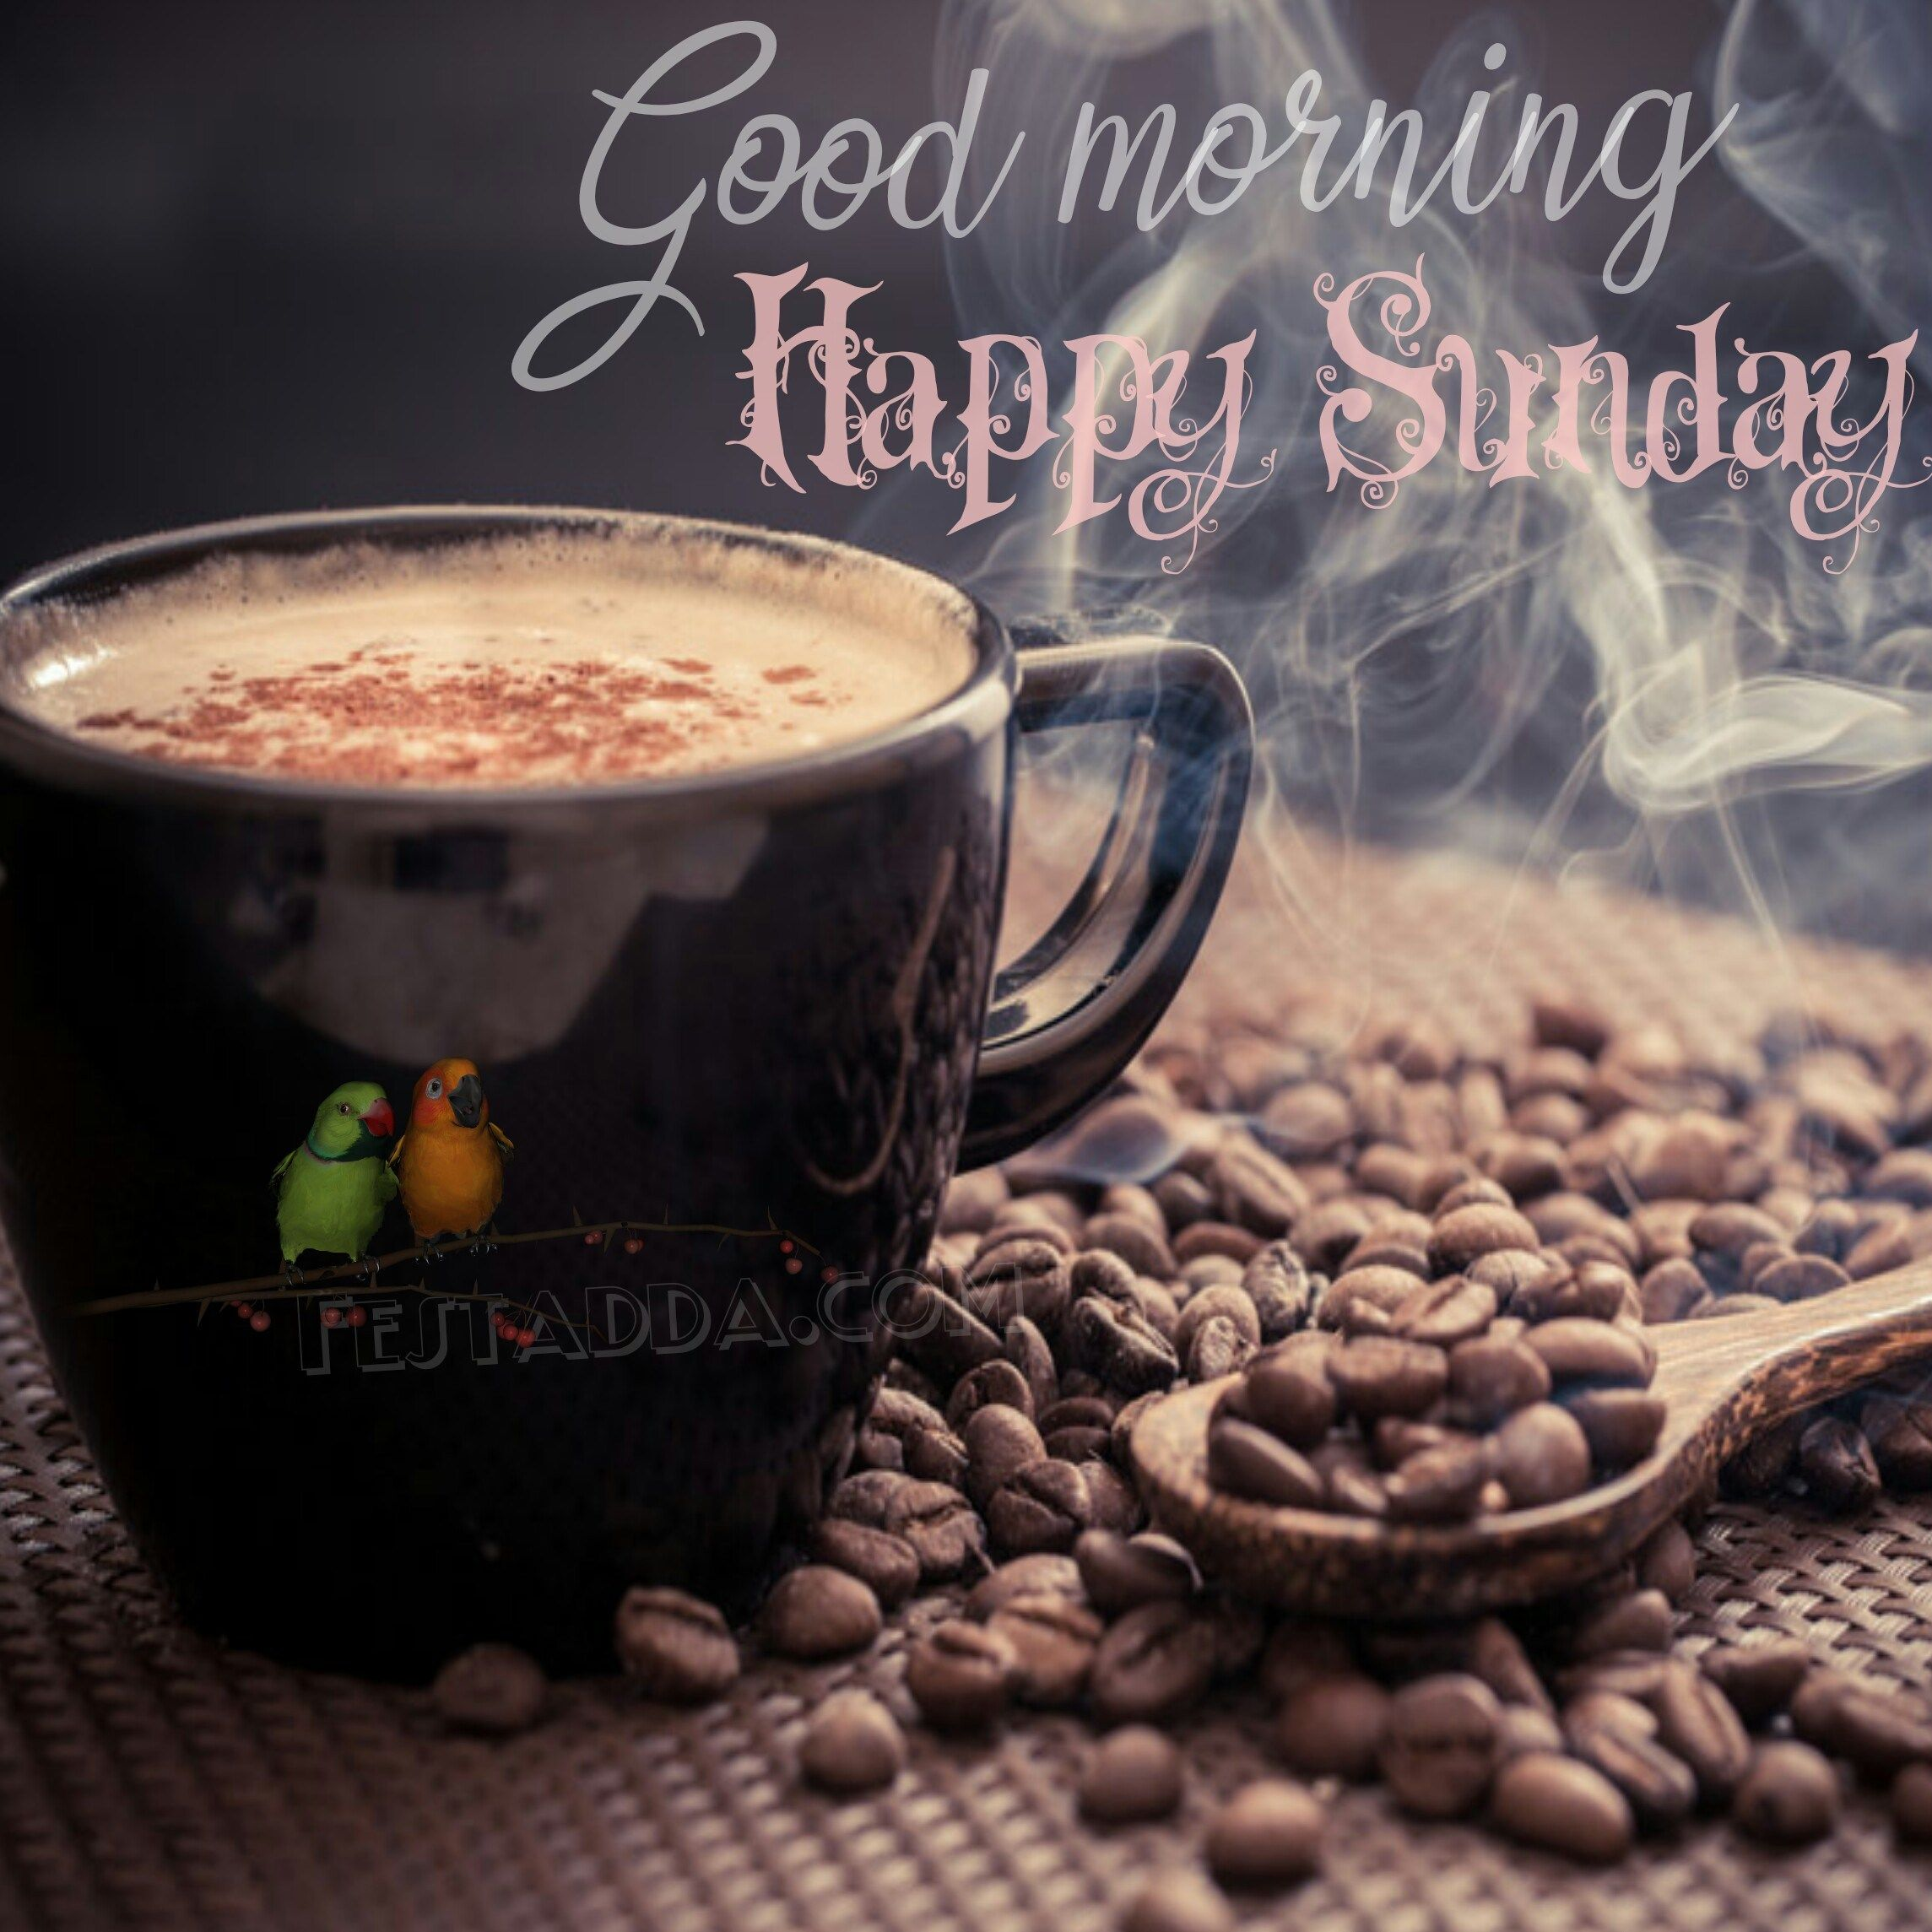 Happy Sunday Images For Whatsapp Status Facebook Dp Full Hd